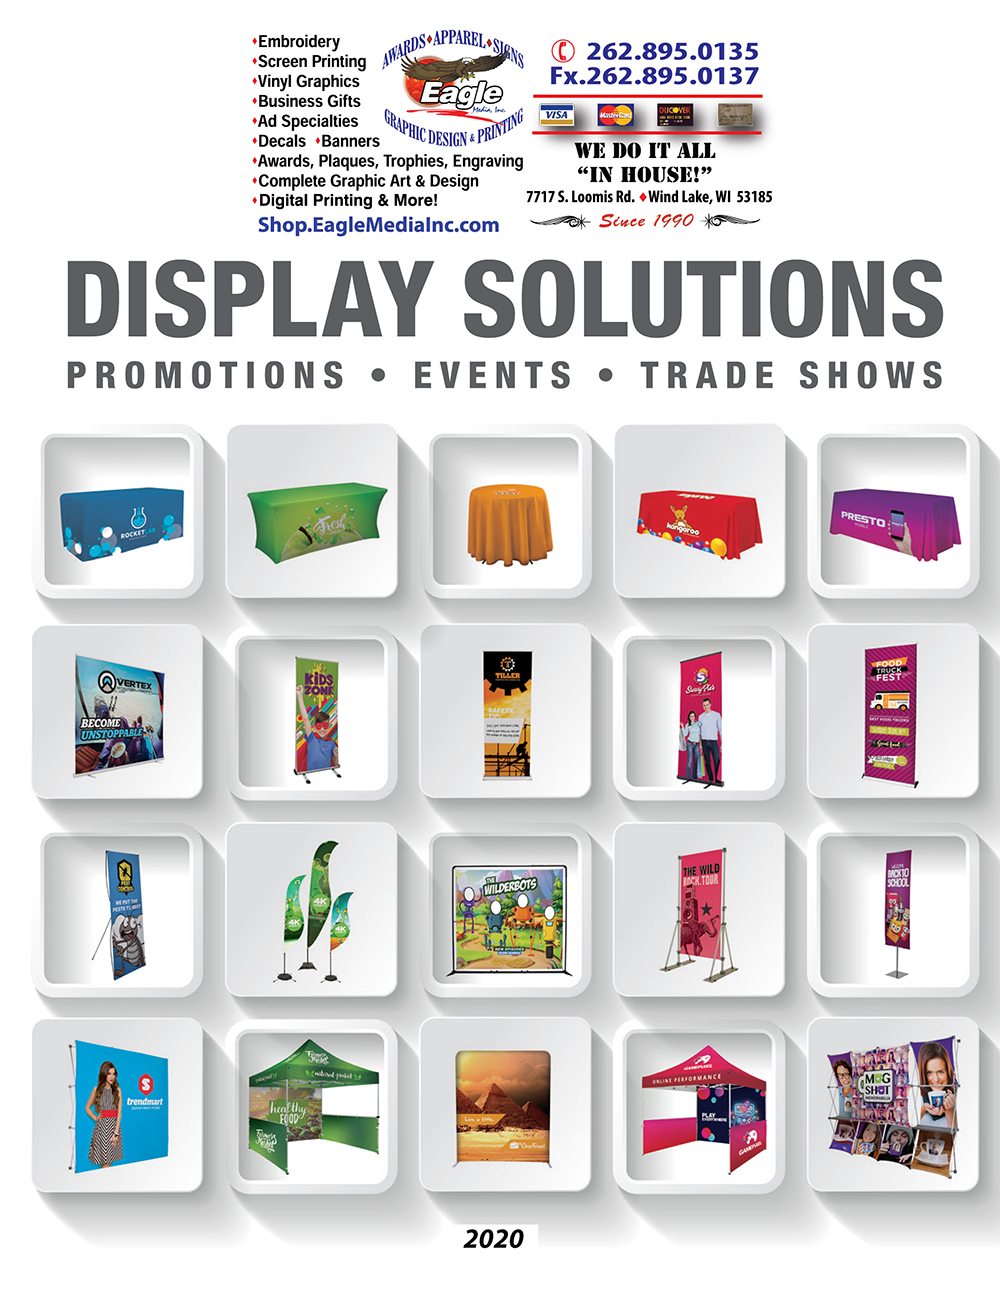 emi-2020cover-display-and-tradeshow-solutions-01.jpg